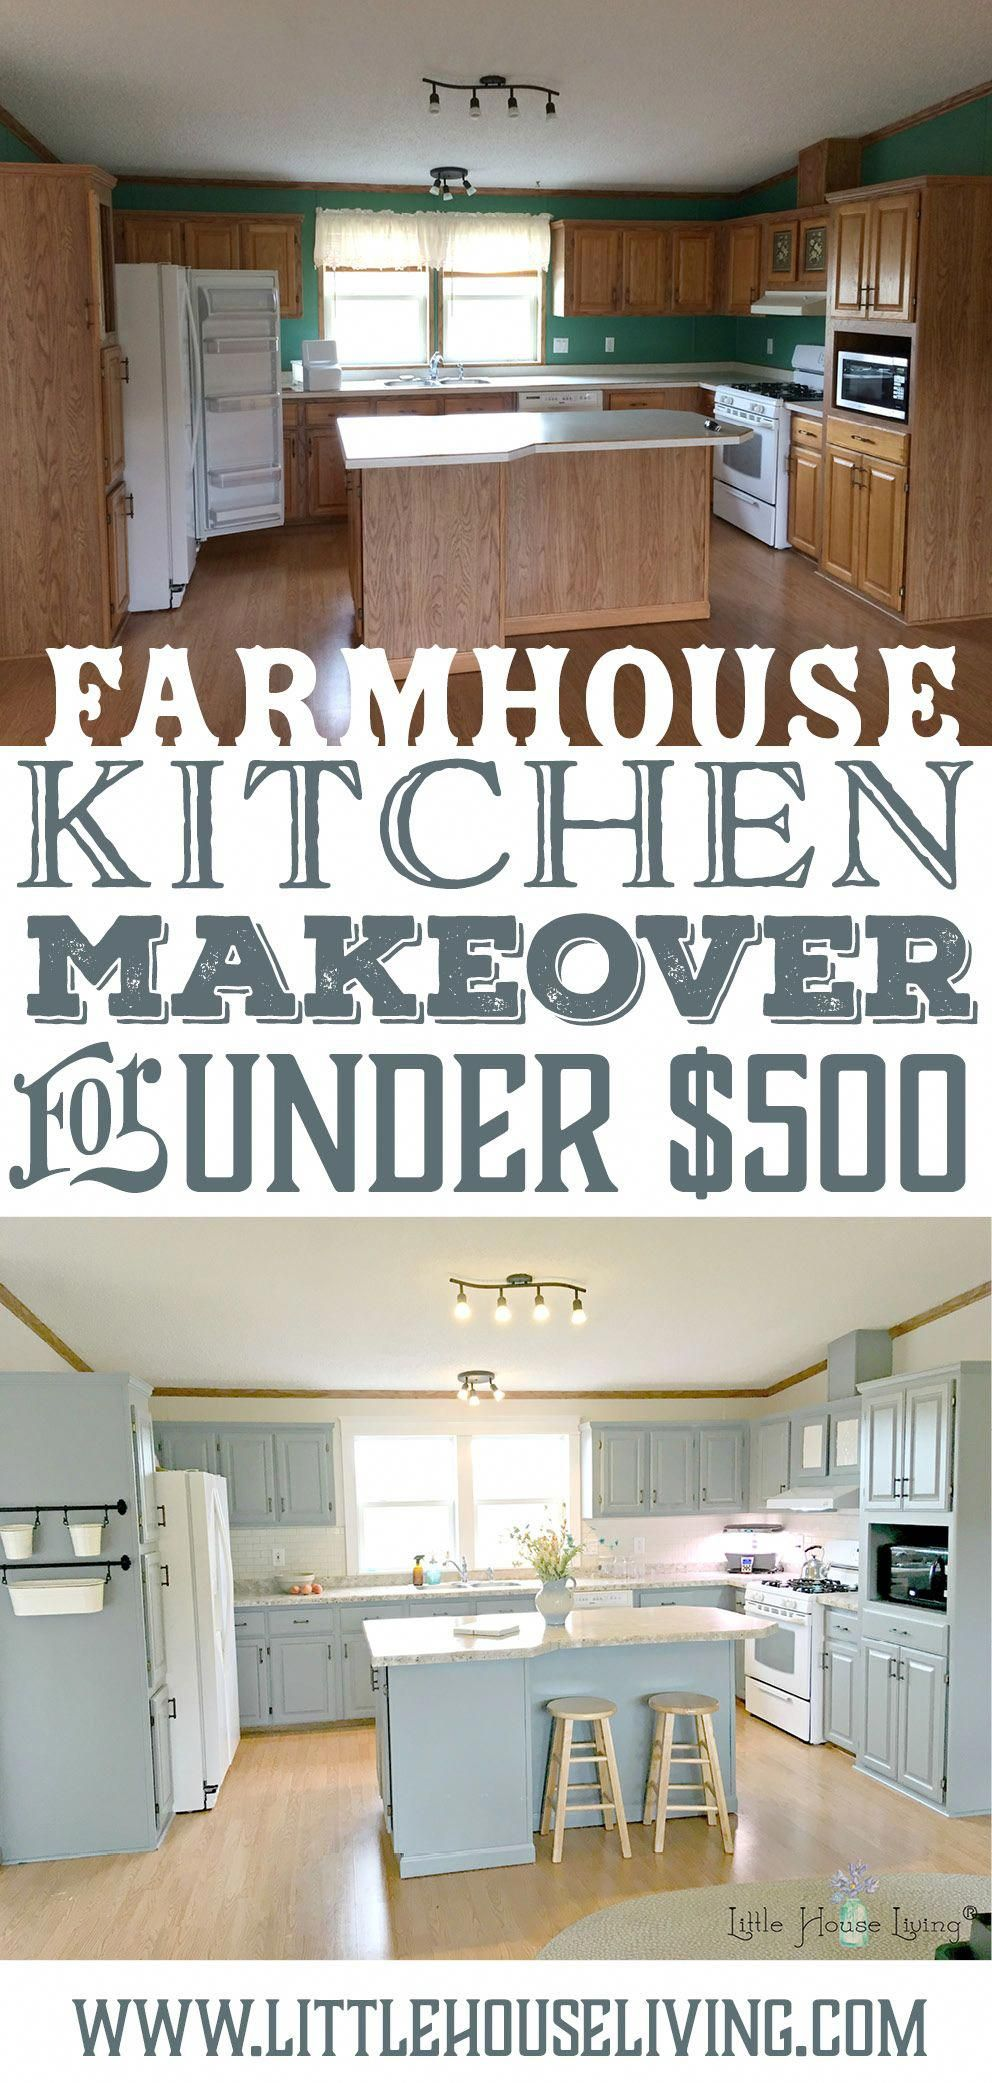 10x10 Kitchen Remodel: Have A Peek At This Web-site Chatting About 10x10 Kitchen